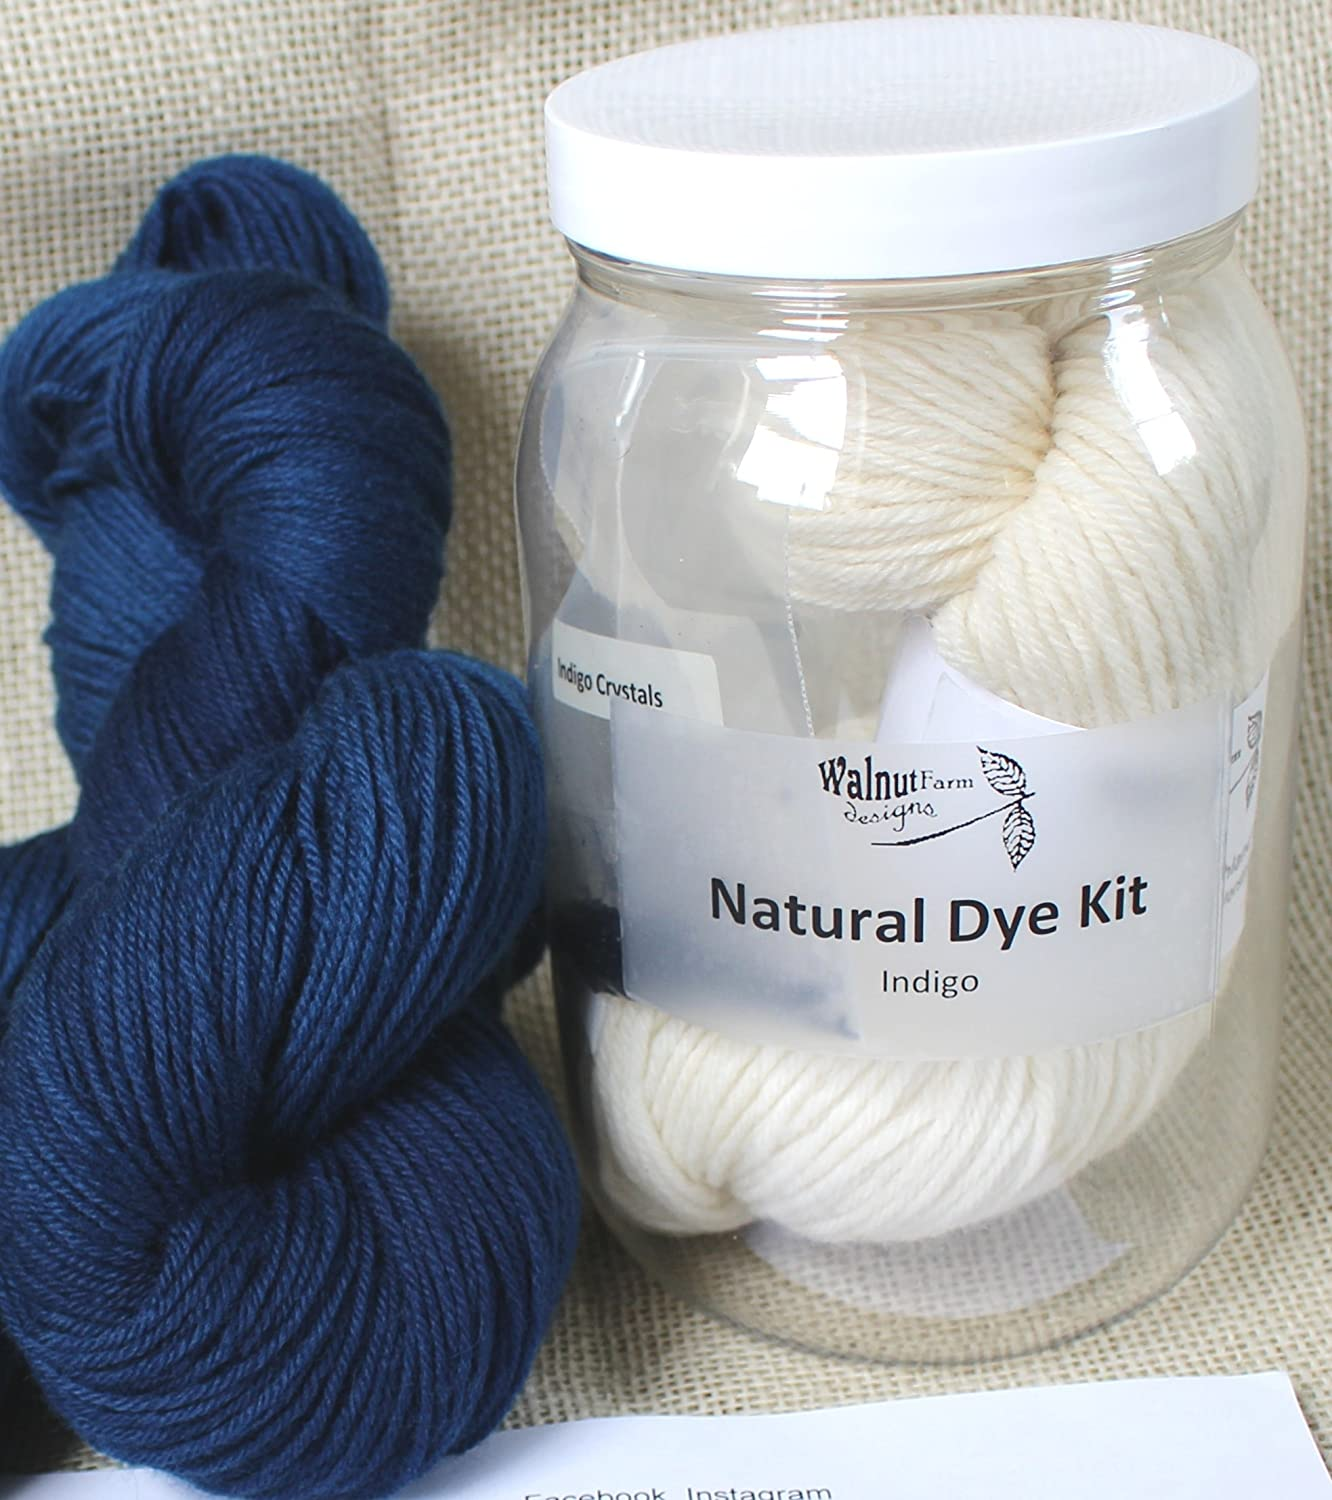 54c02c59c Amazon.com: Indigo Dye Kit for Naturally Plant Dyed Yarn Natural Plant  Dyeing for Knitting, Crochet, Weaving: Everything Else